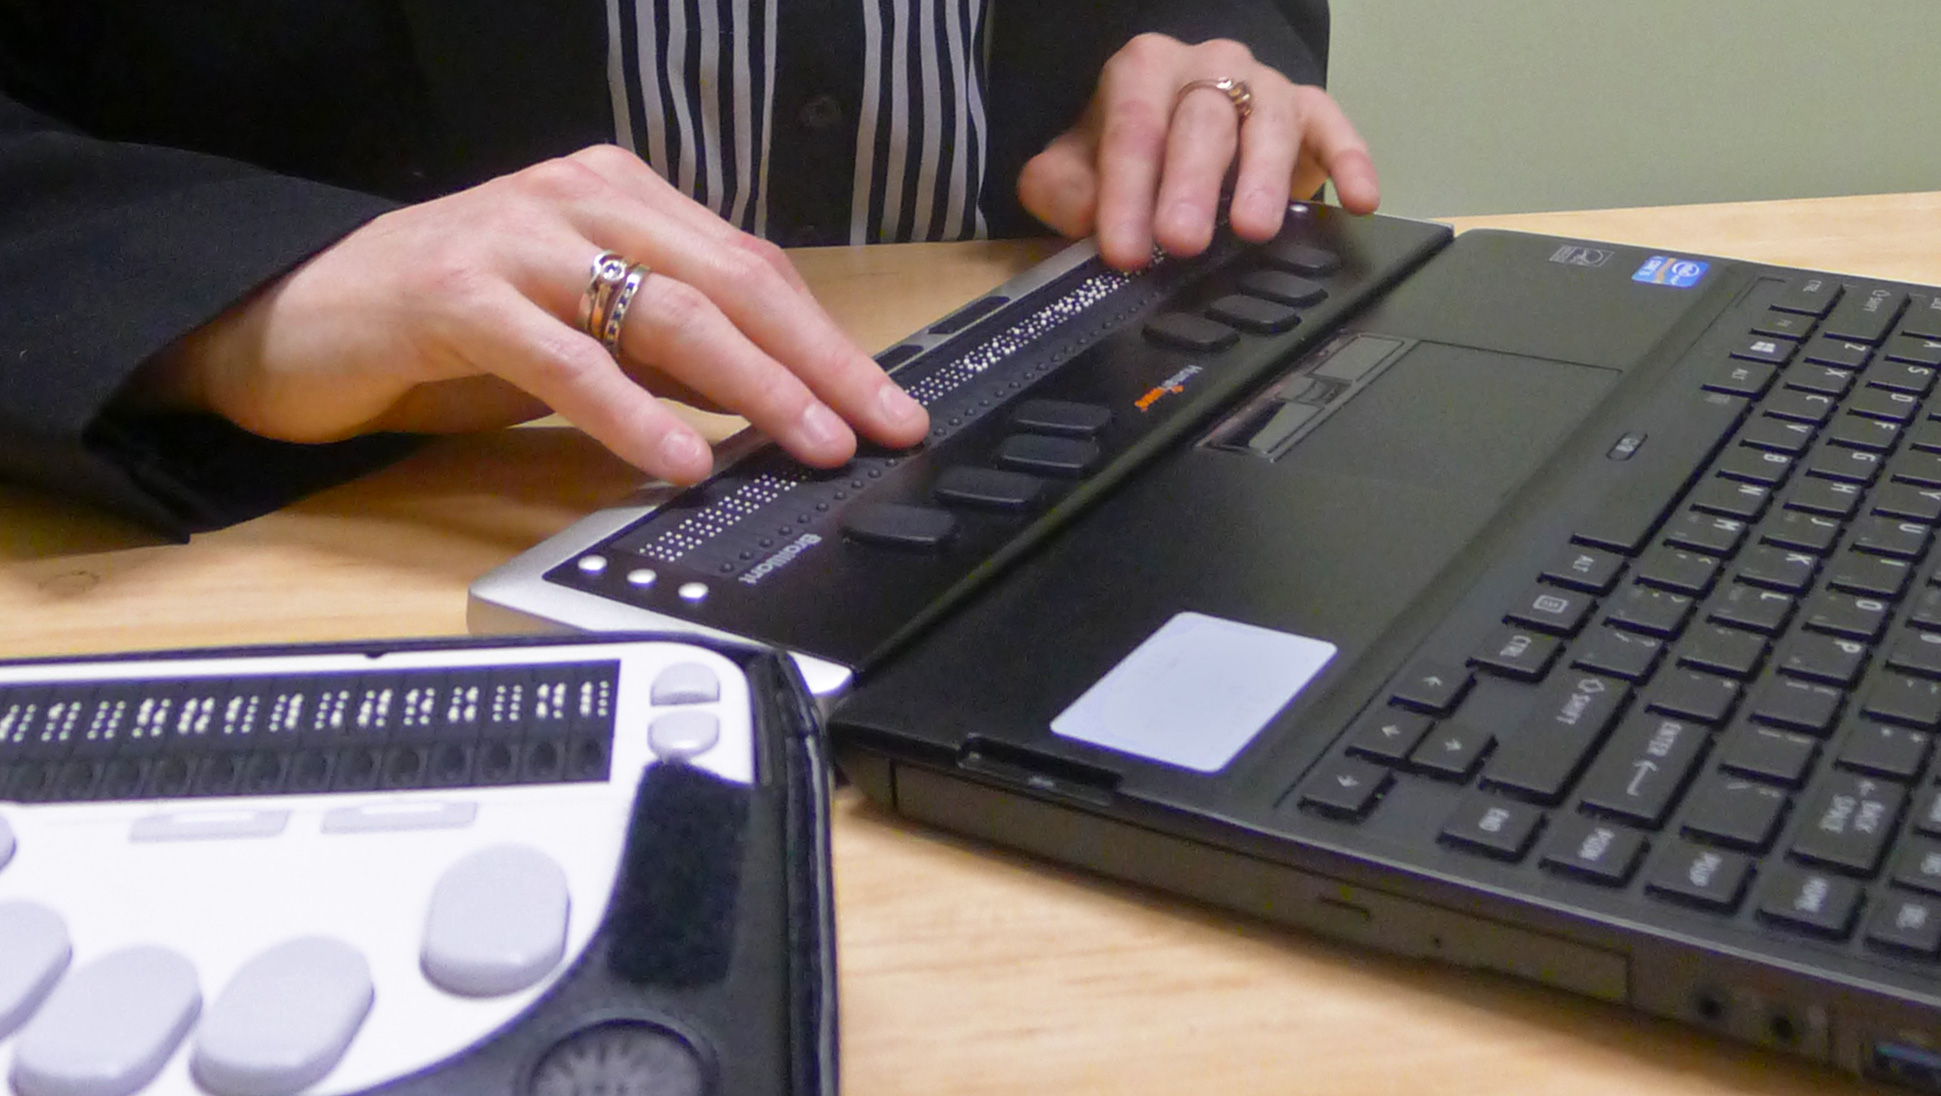 A person's hands reading a refreshable braille display, and a braille note taker device is also in scene.